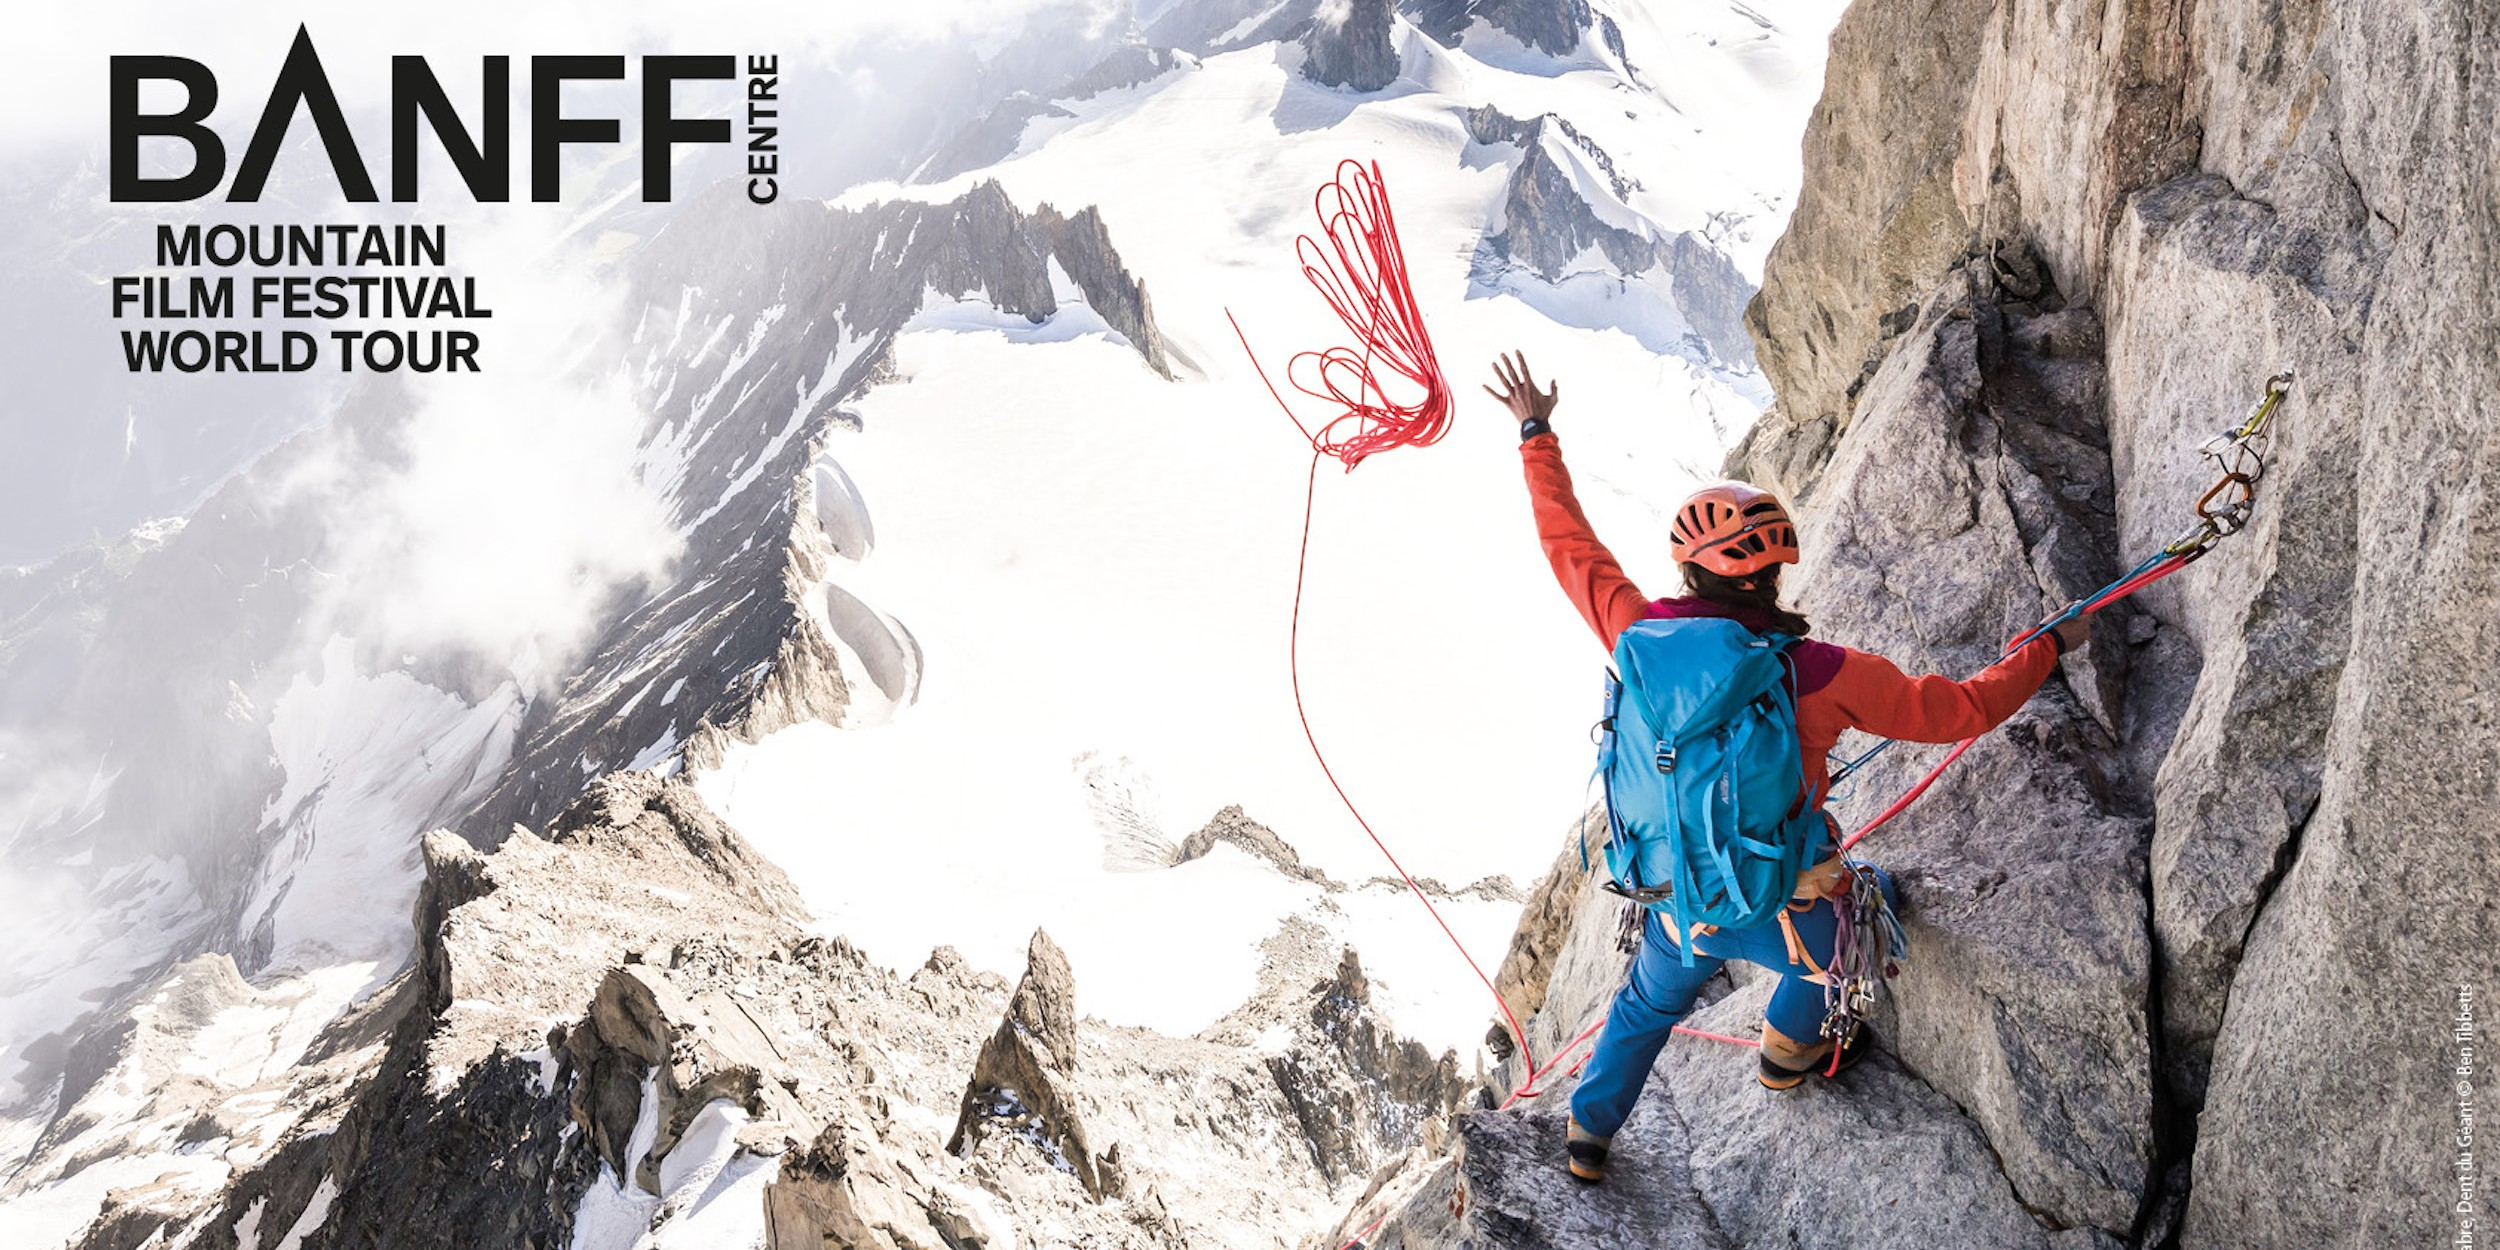 Banff Mountain Film Festival 2019